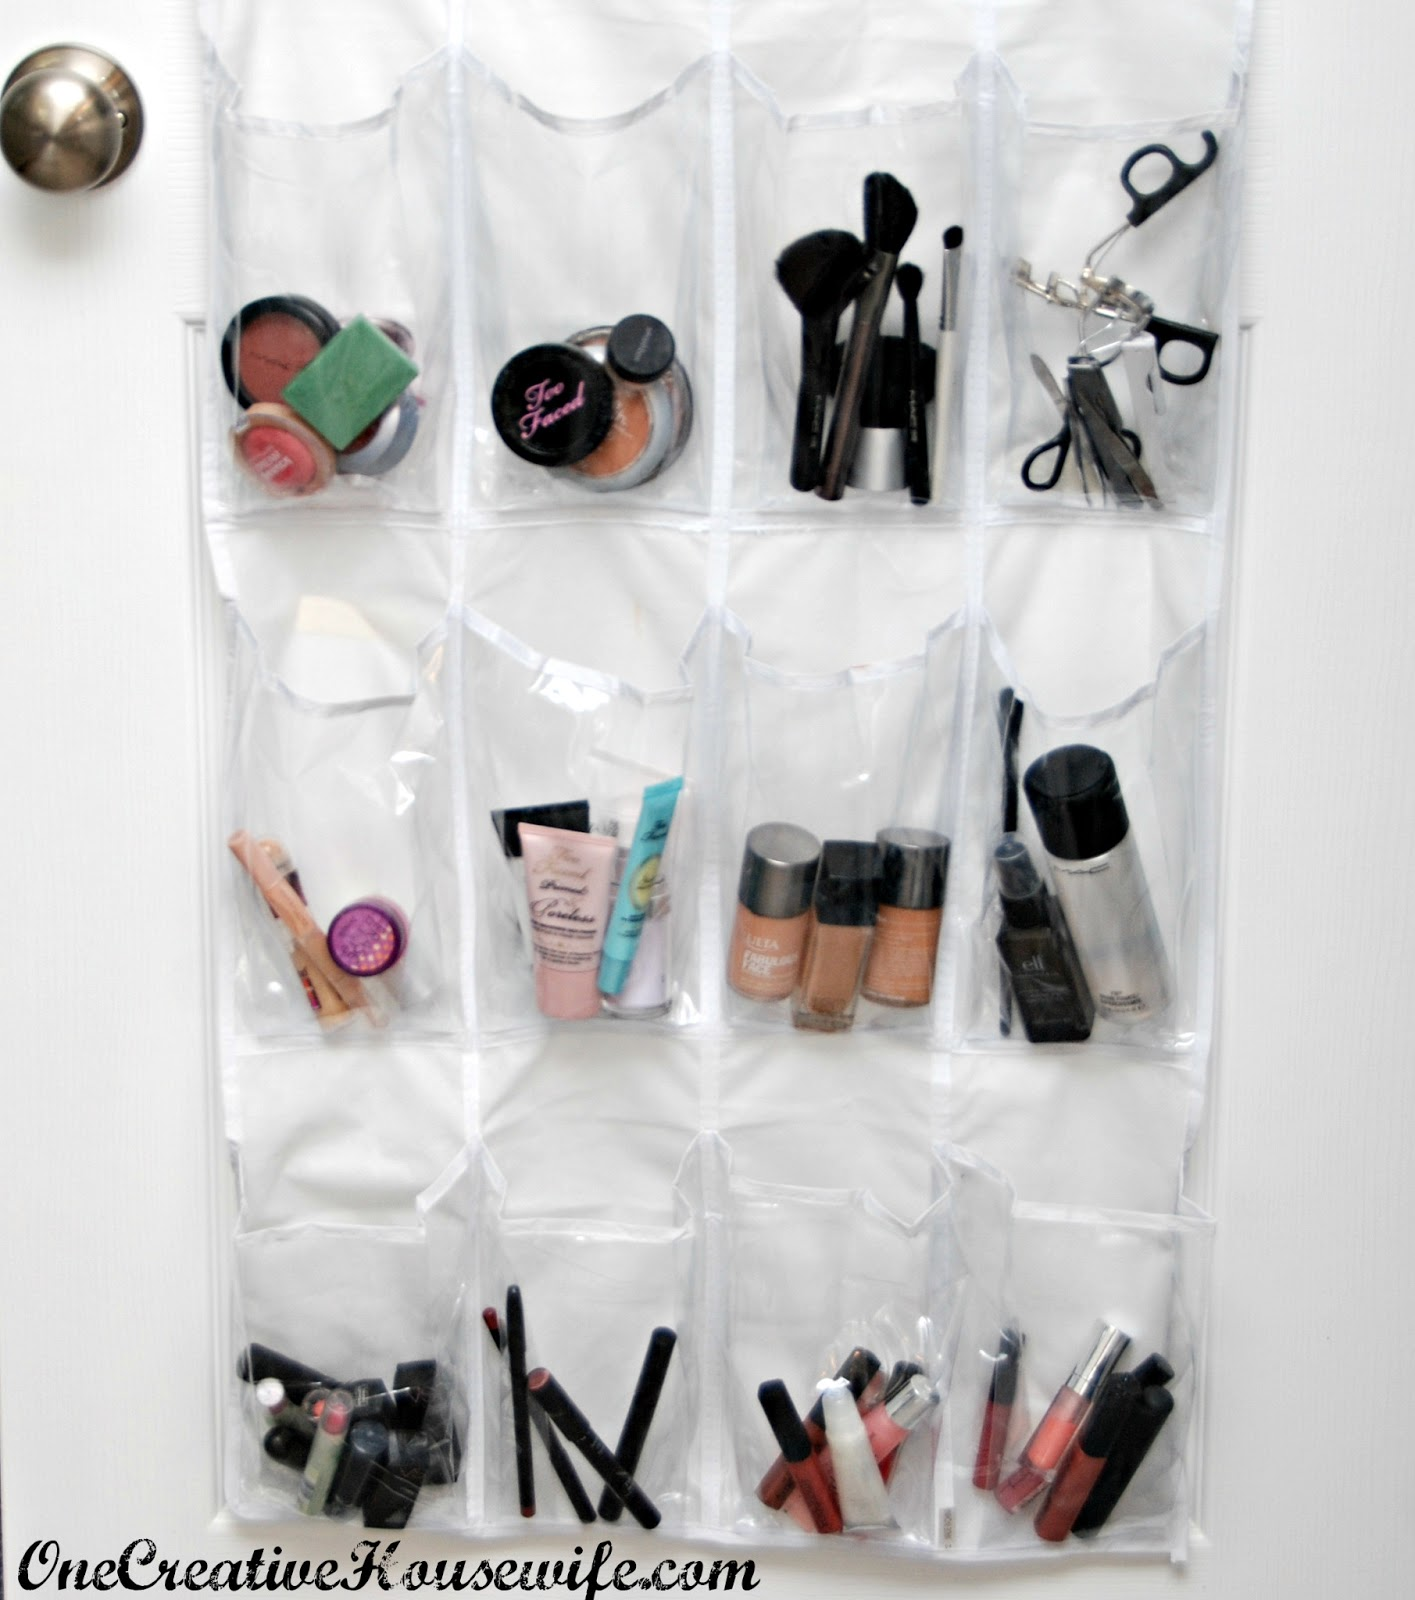 Shoe Organizer | Makeup Organizers And Storage Ideas For Makeup Junkies | Makeup Organizers | makeup brush organizer